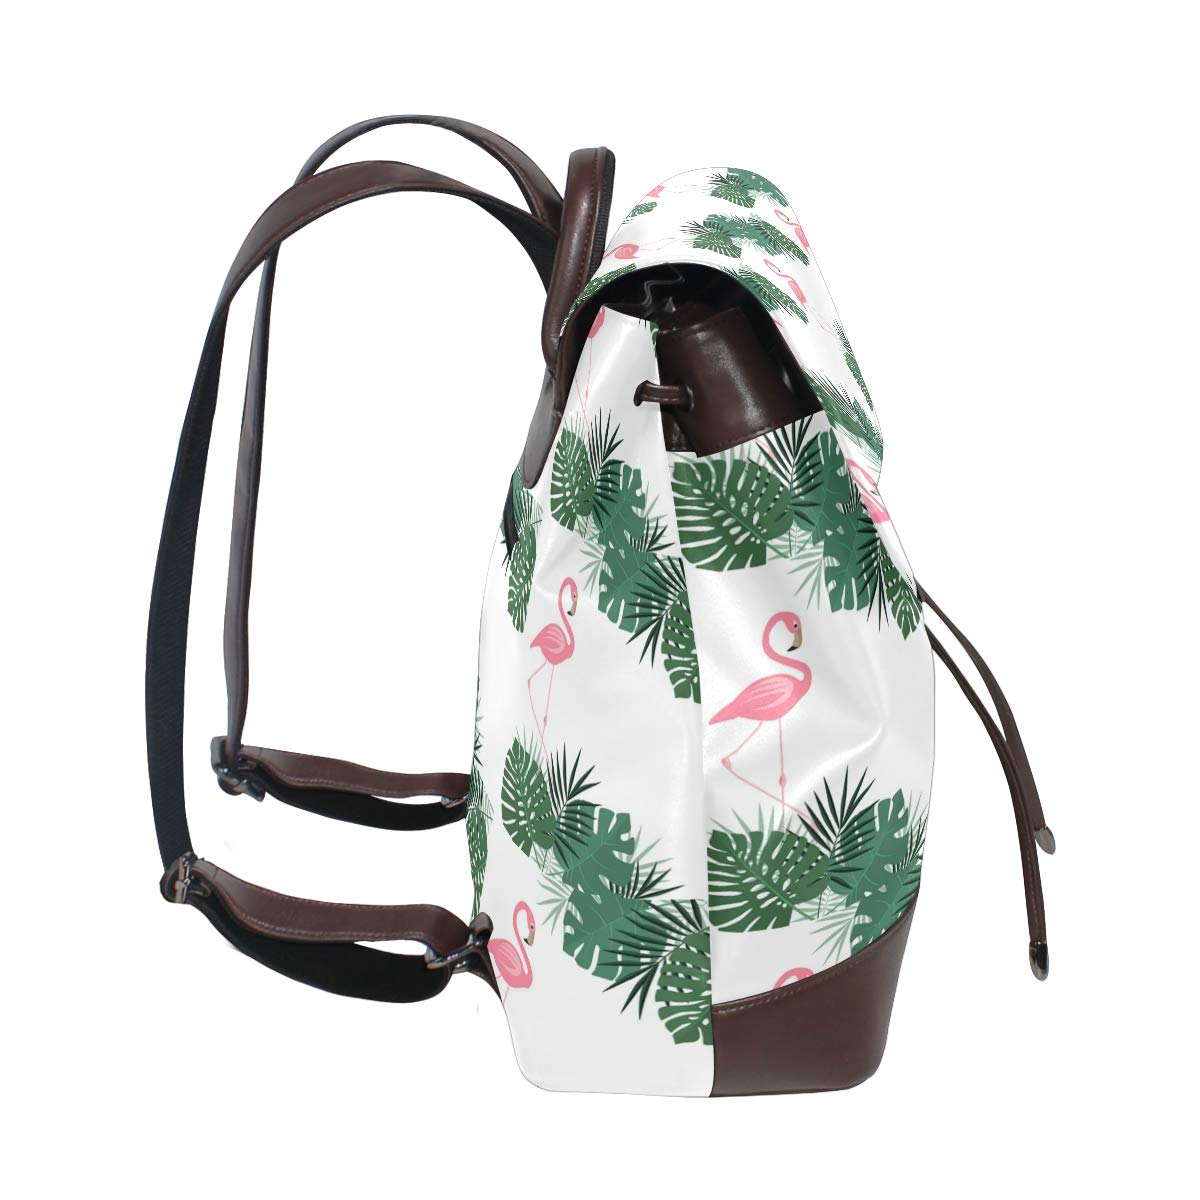 Leather Palm Leaves And Flamingo Backpack Daypack Bag Women